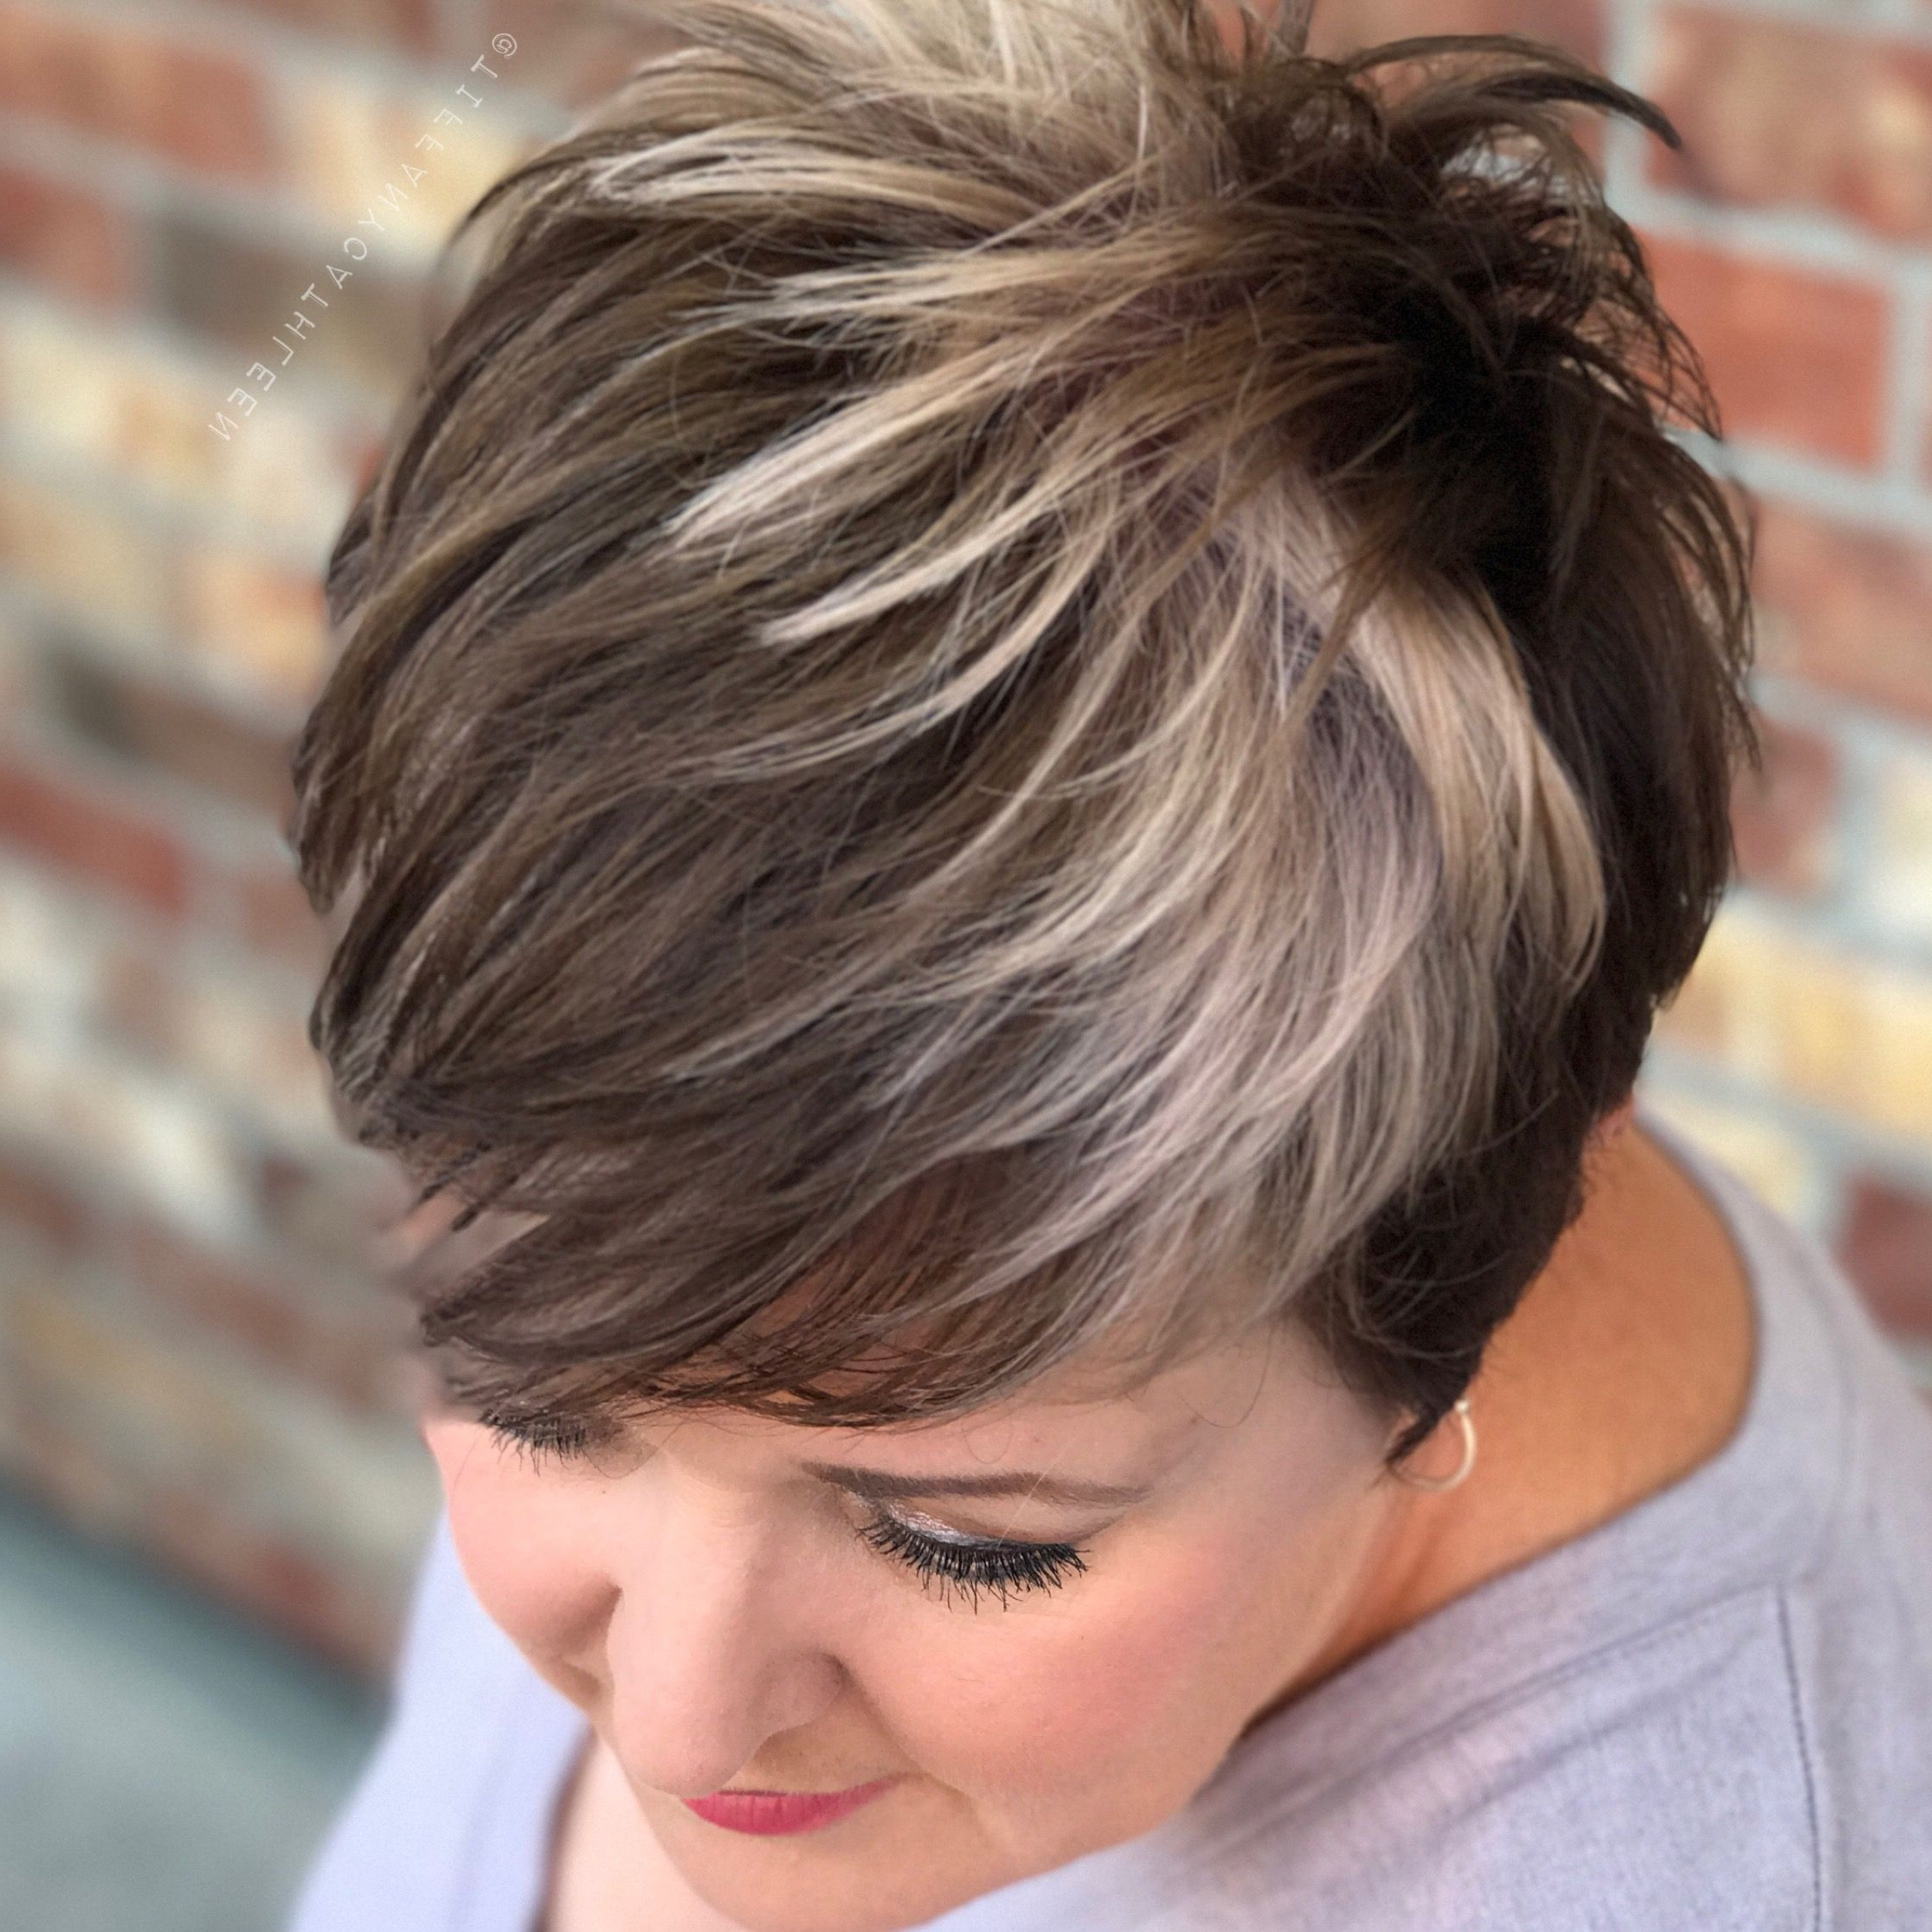 Pin On My Hairstyles Regarding Long Pixie Haircuts With Sharp Layers And Highlights (View 6 of 20)